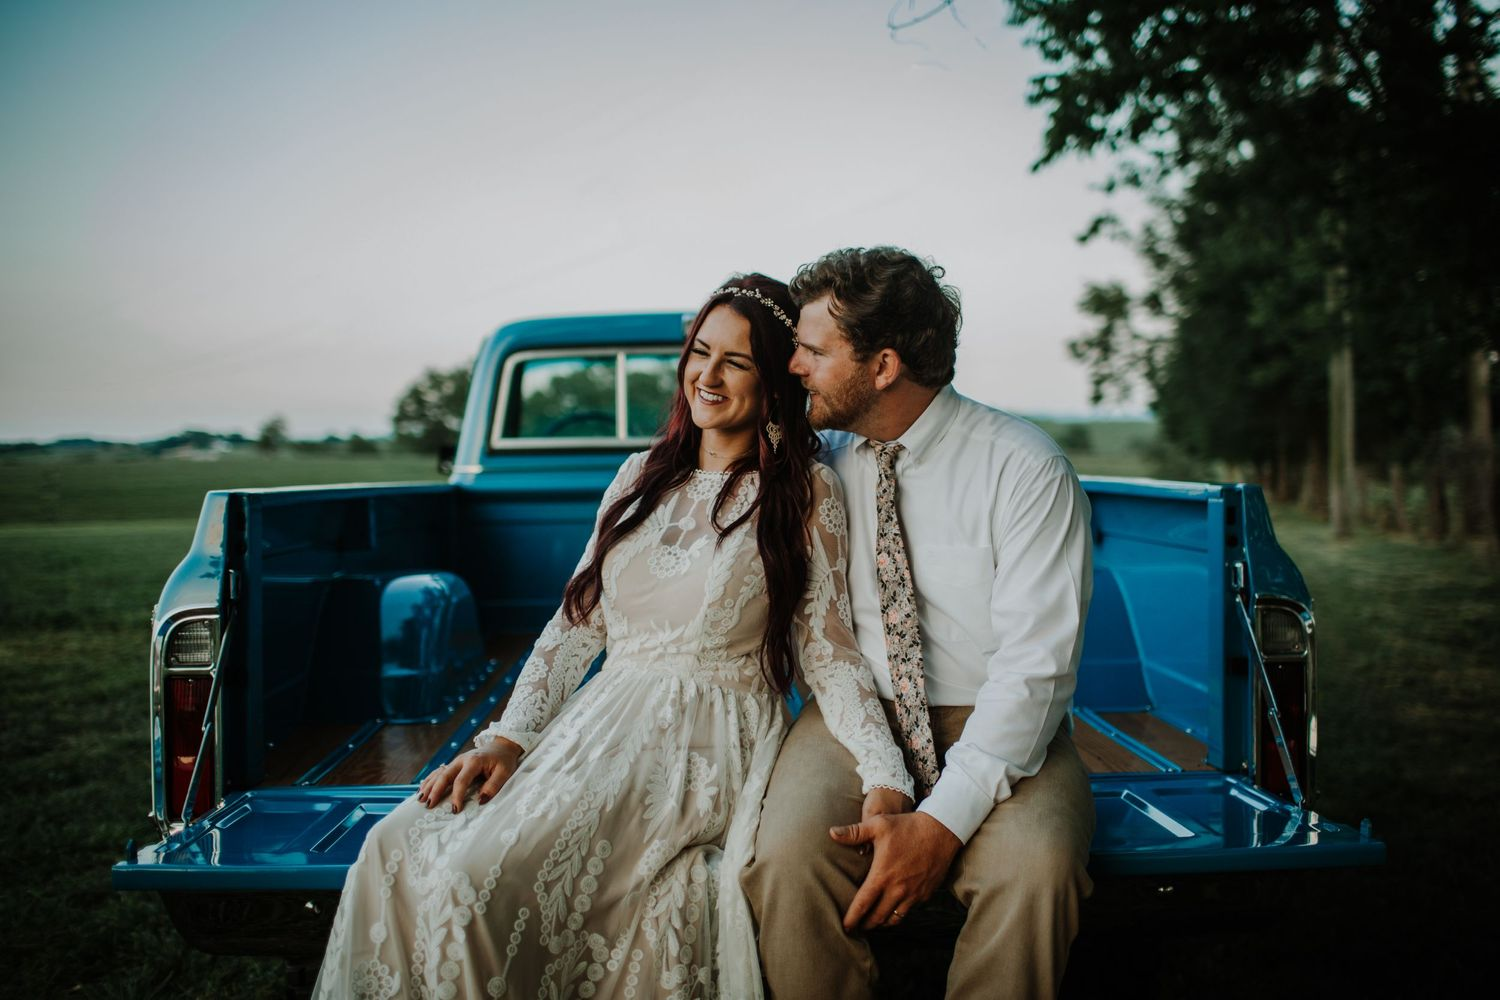 Moody wedding photography Lexington central KY Kentucky unique engagement session elopement near me local photographer